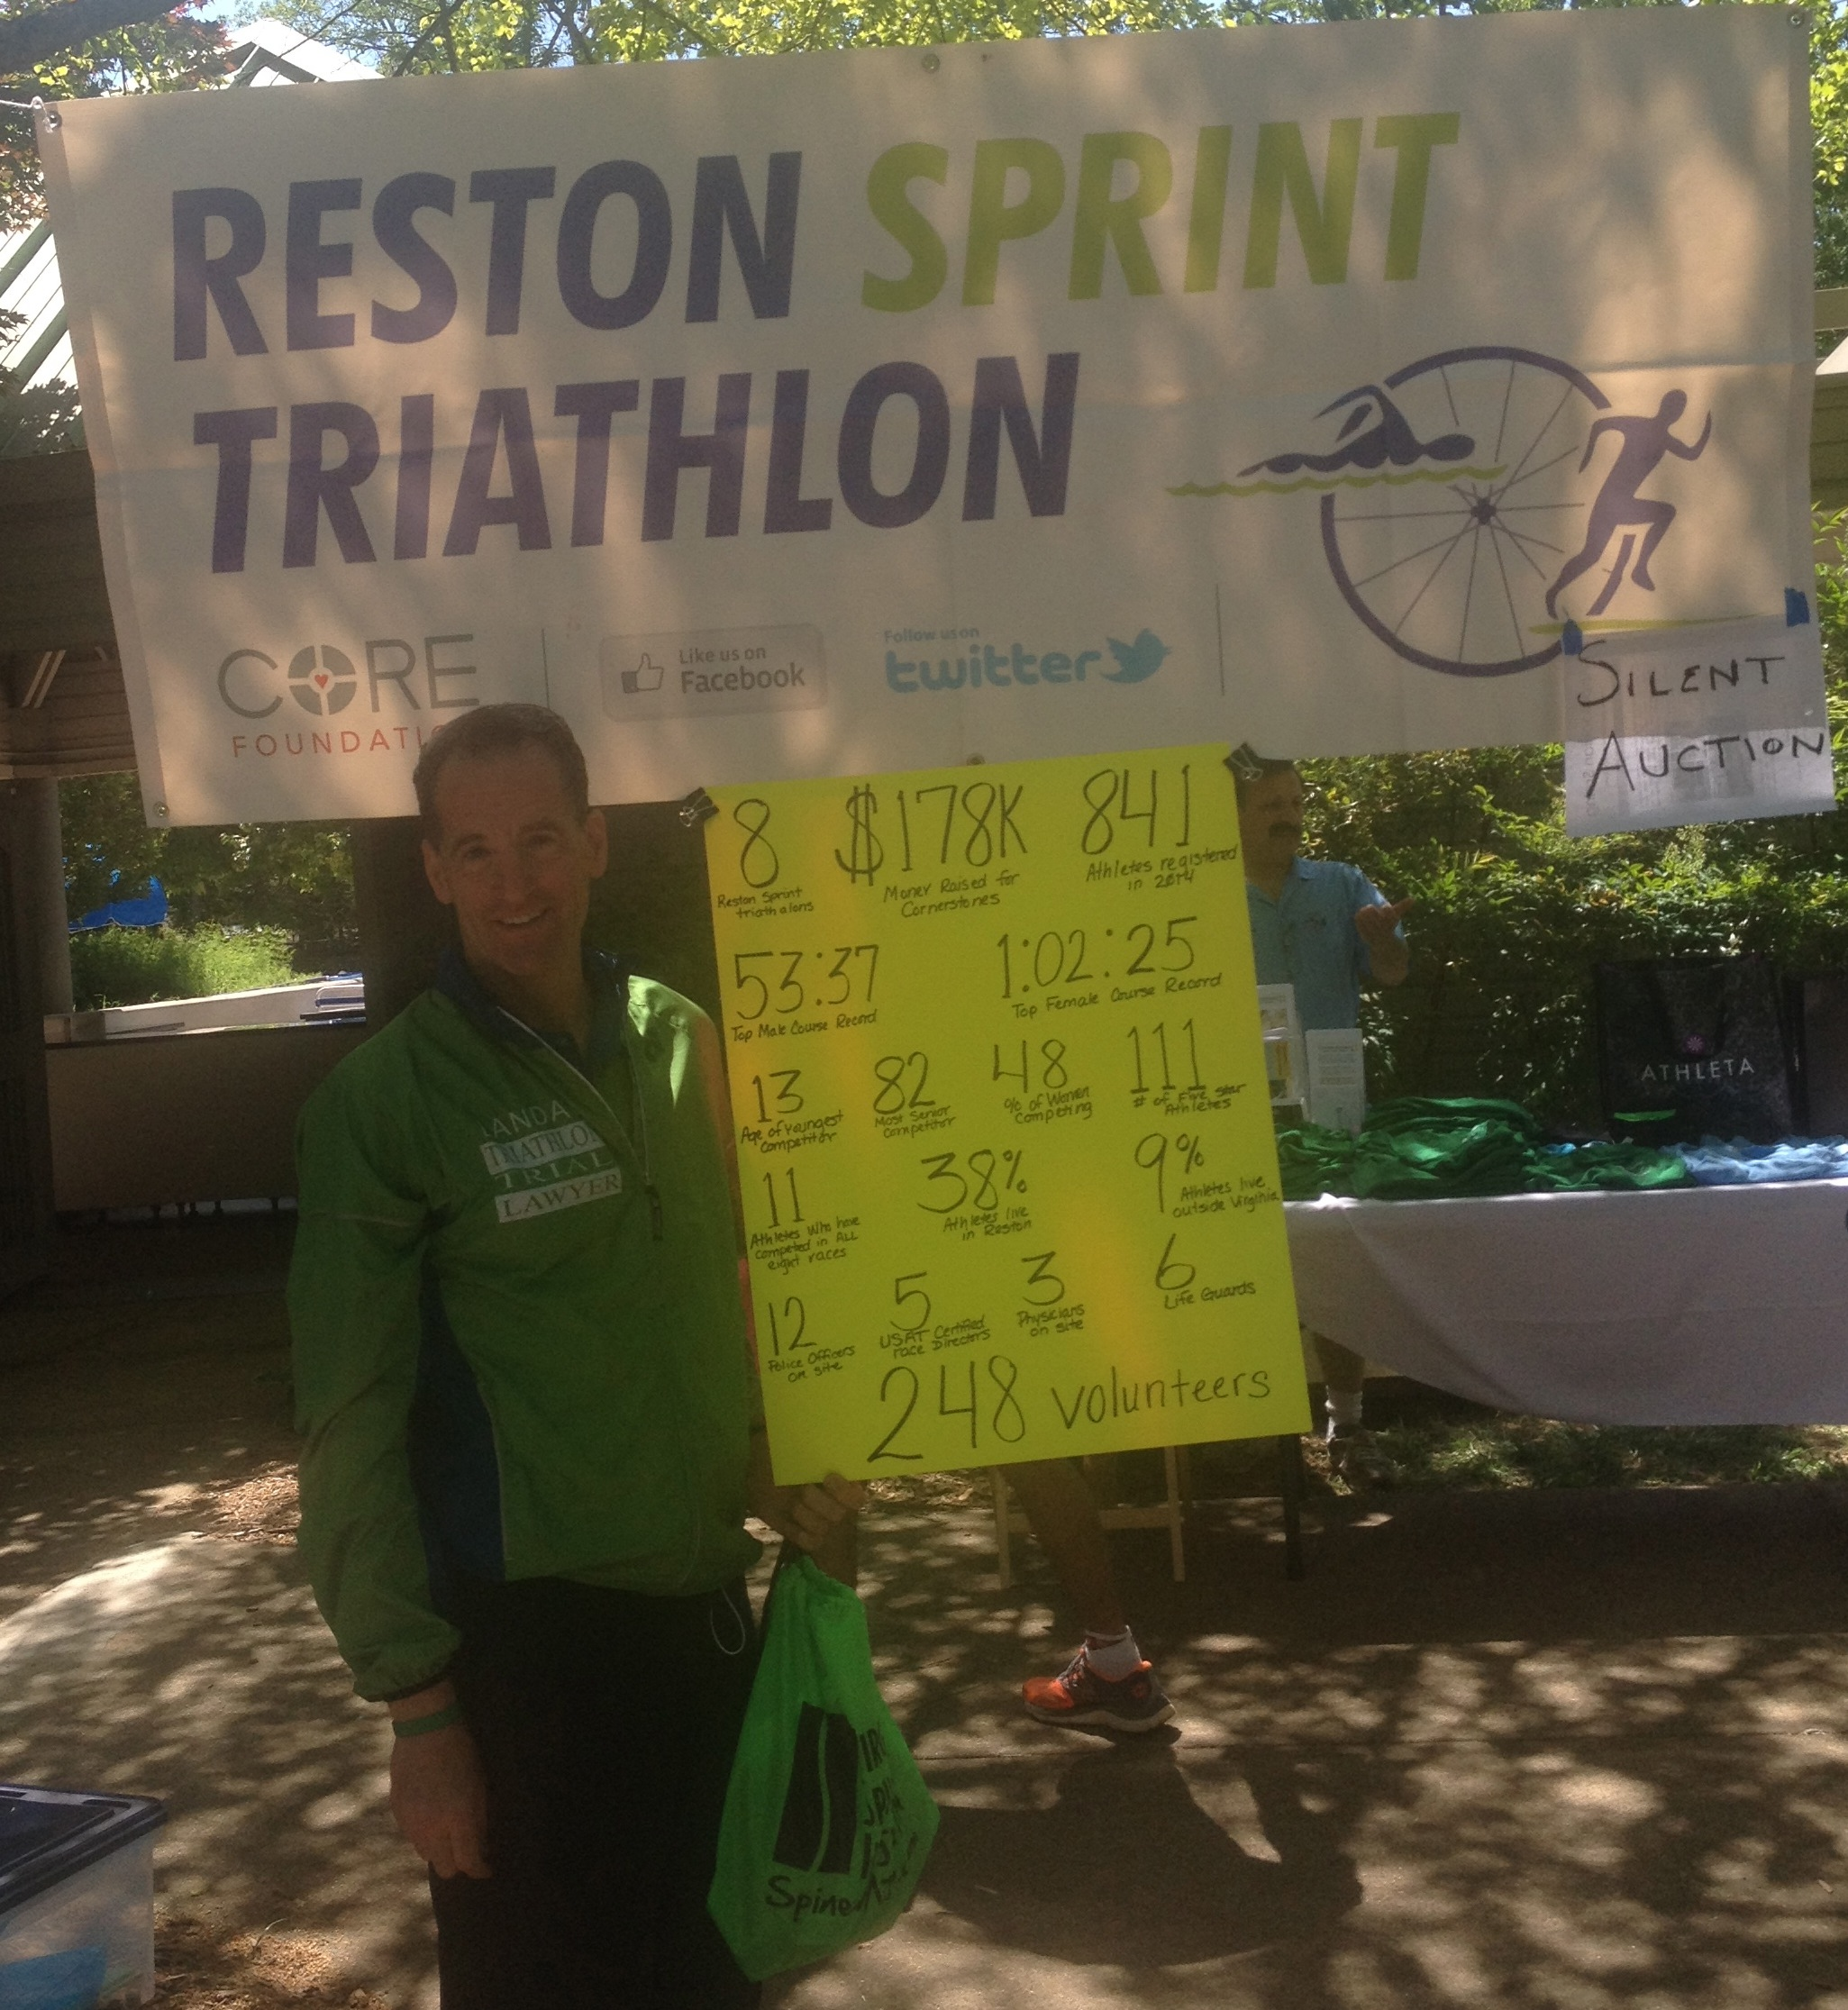 What the Reston Sprint Triathlon does for local charity and the economy is quite impressive. The Race Committee deserves a lot of credit for putting on such a fun annual charitable event.